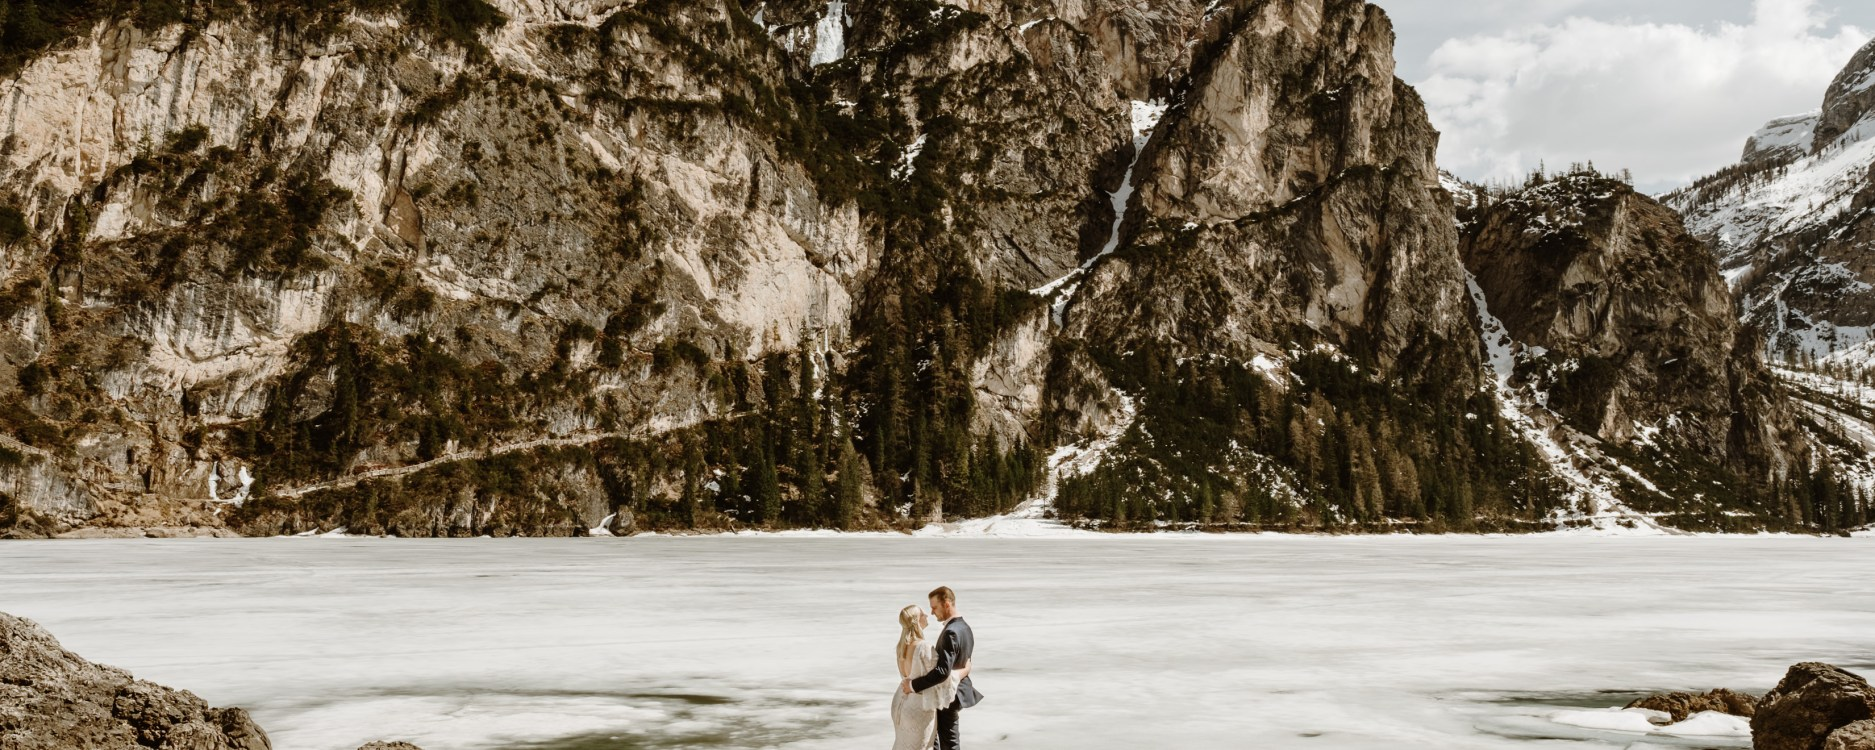 A winter elopement in the Dolomites at Lago di Braies by Dolomites Elopement Photographer Wild Connections Photography